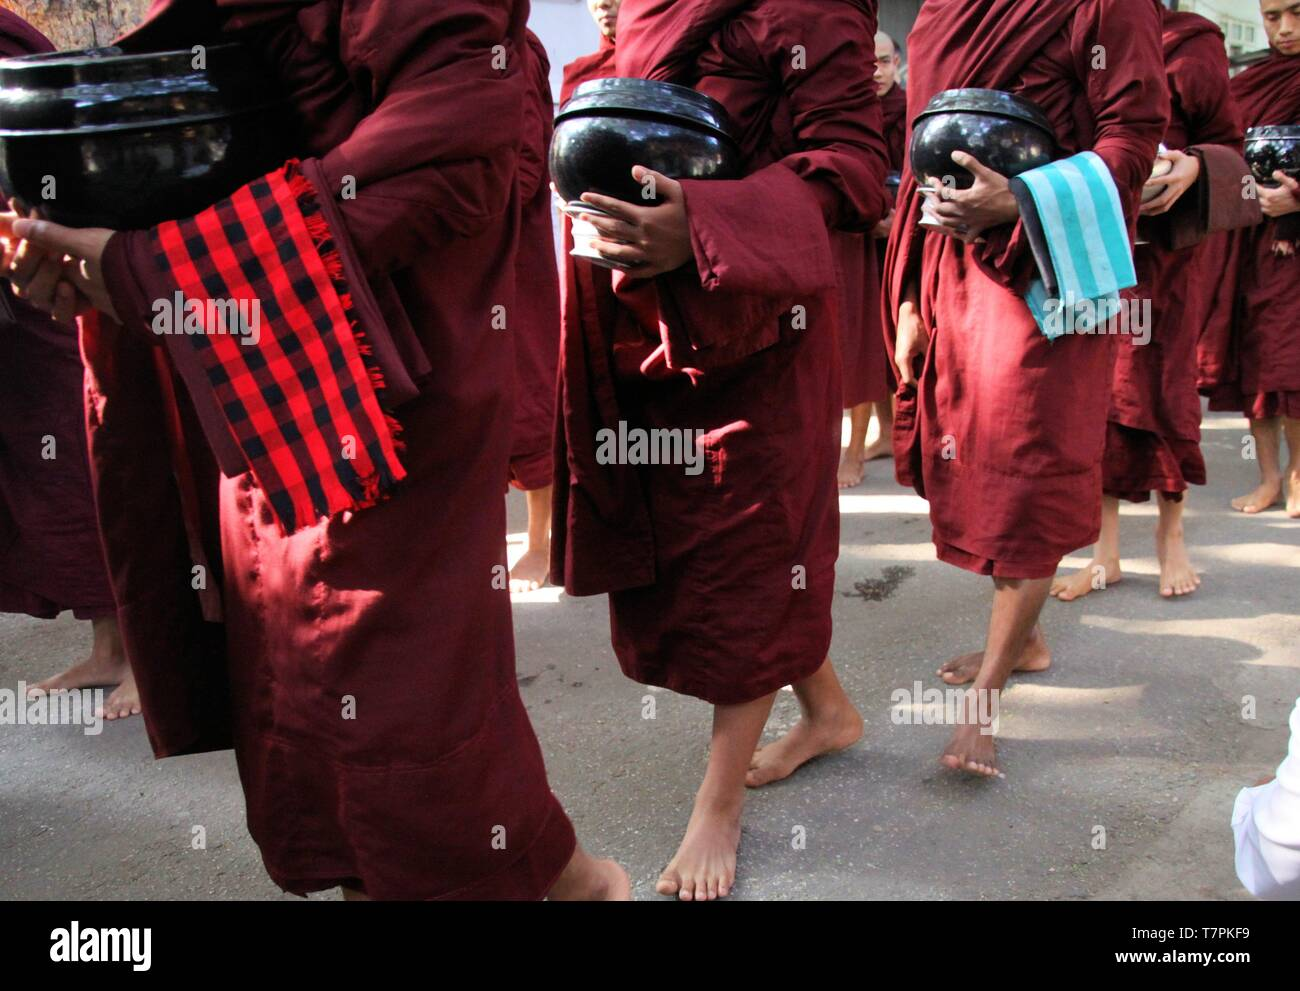 MANDALAY, MYANMAR - DECEMBER 18. 2015: Procession of Buddhist monks at Mahagandayon Monastery in the early morning Stock Photo